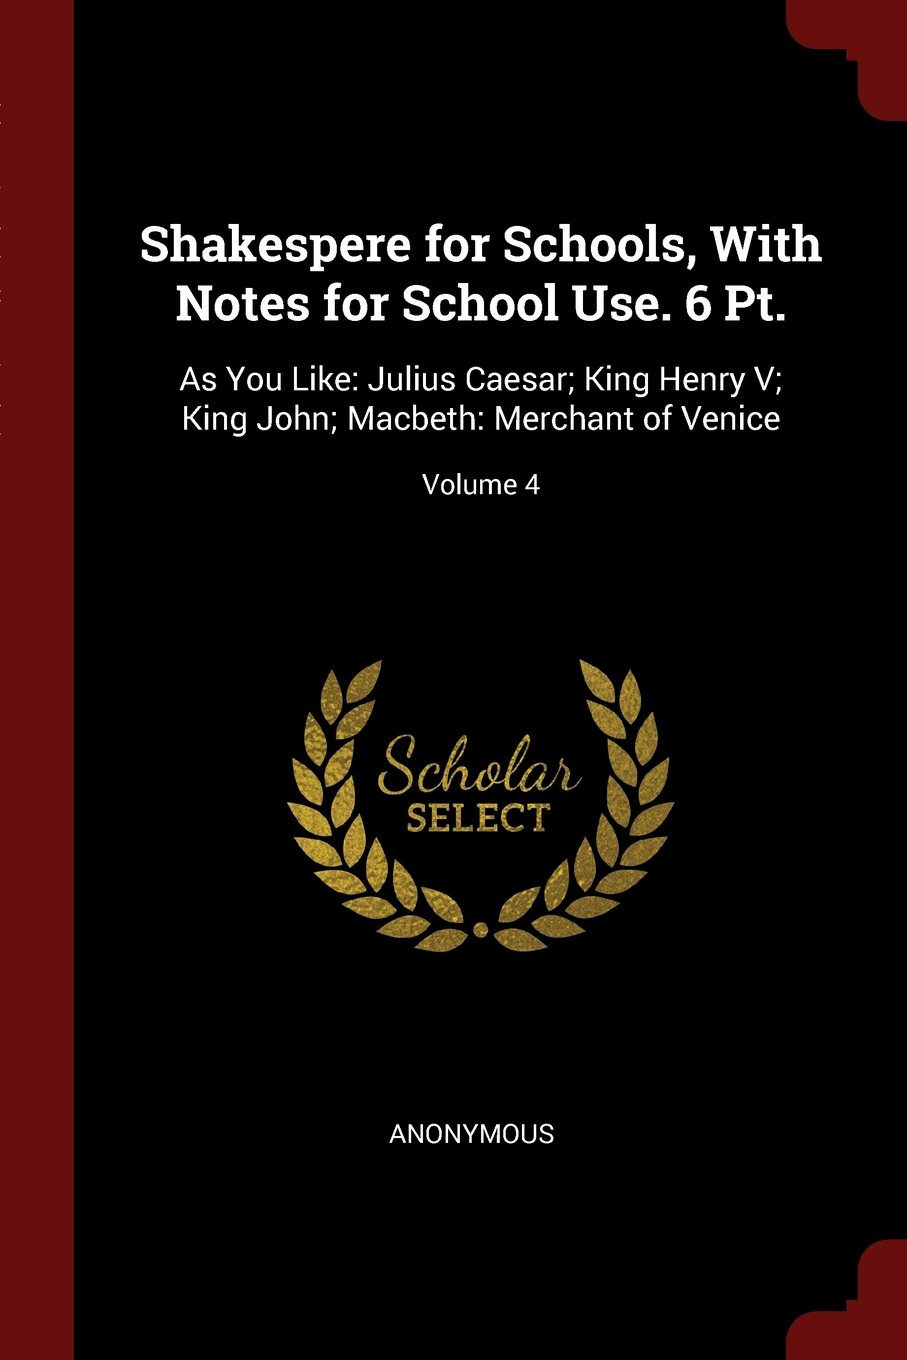 Download Shakespere for Schools, With Notes for School Use. 6 Pt.: As You Like: Julius Caesar; King Henry V; King John; Macbeth: Merchant of Venice; Volume 4 pdf epub